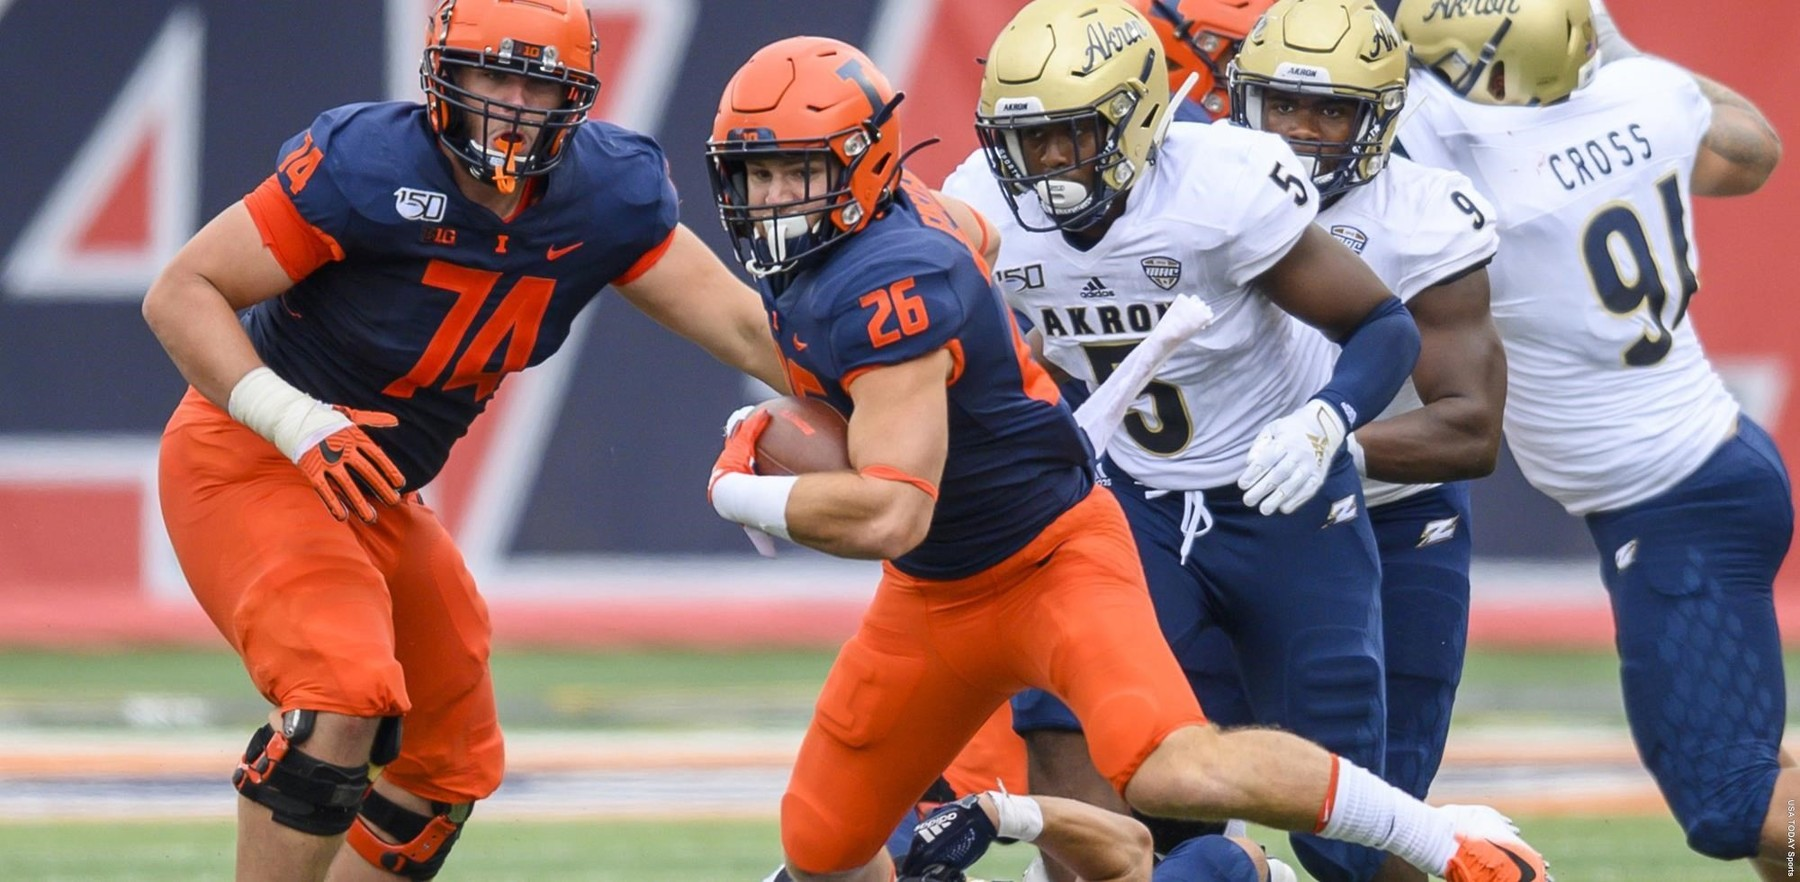 Mike Epstein carries the ball in a running play for Illinois against Akron in the first game of the 2019 season